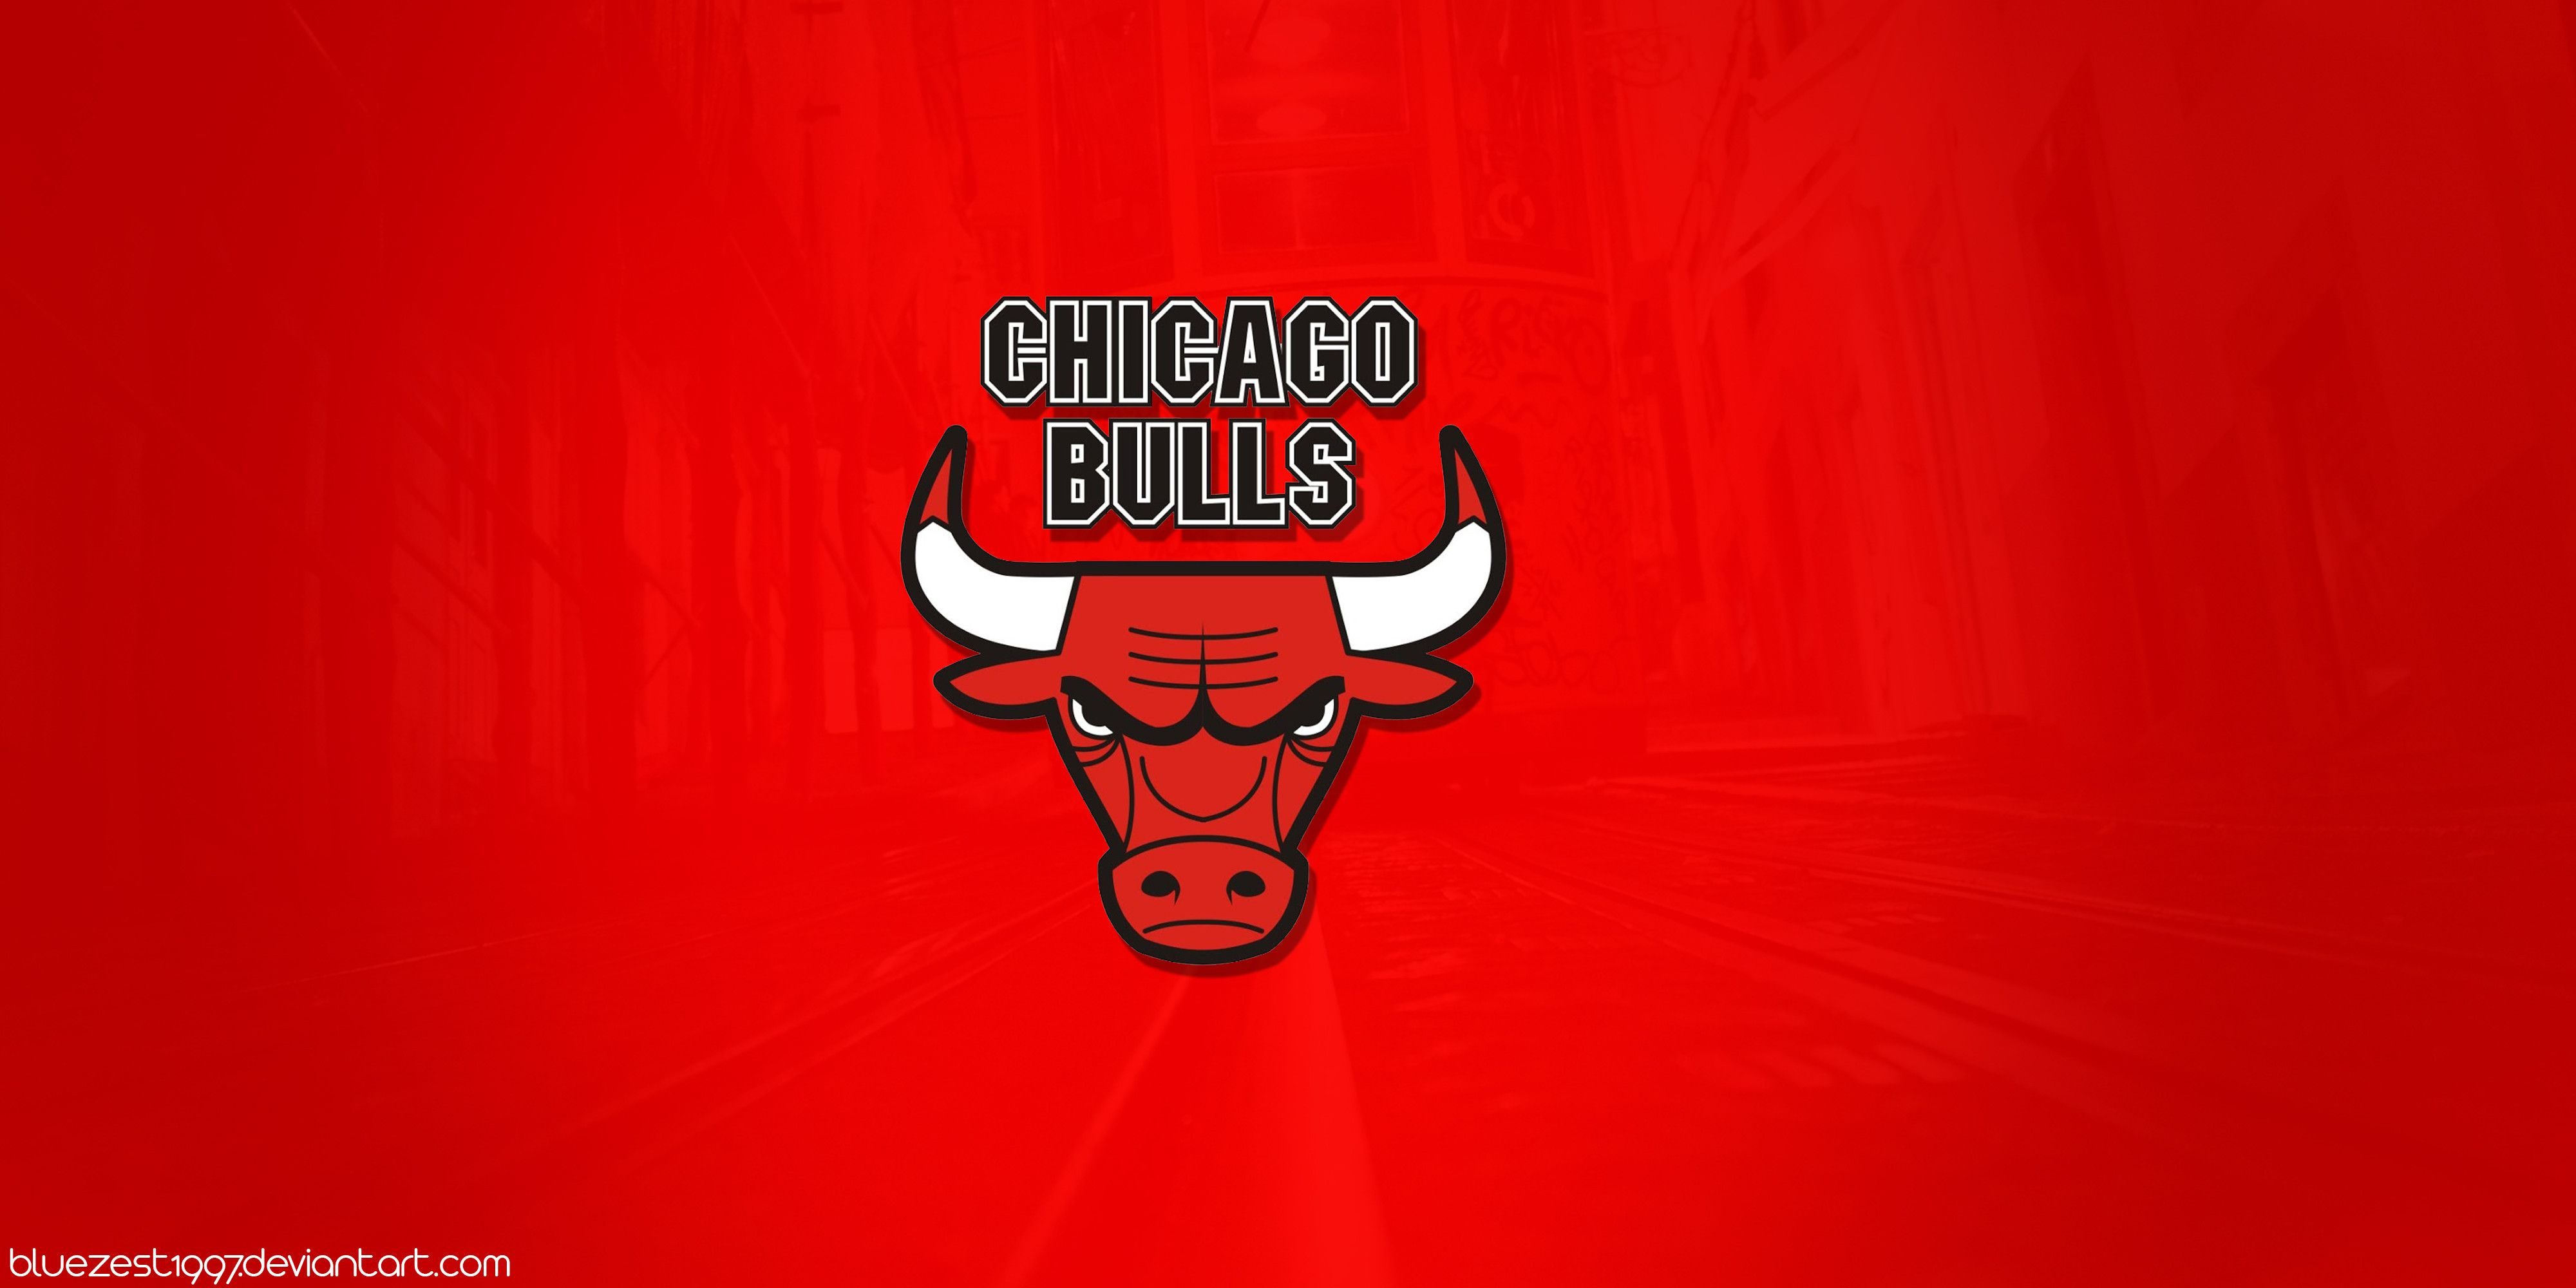 Chicago Bulls Wallpaper 1080p